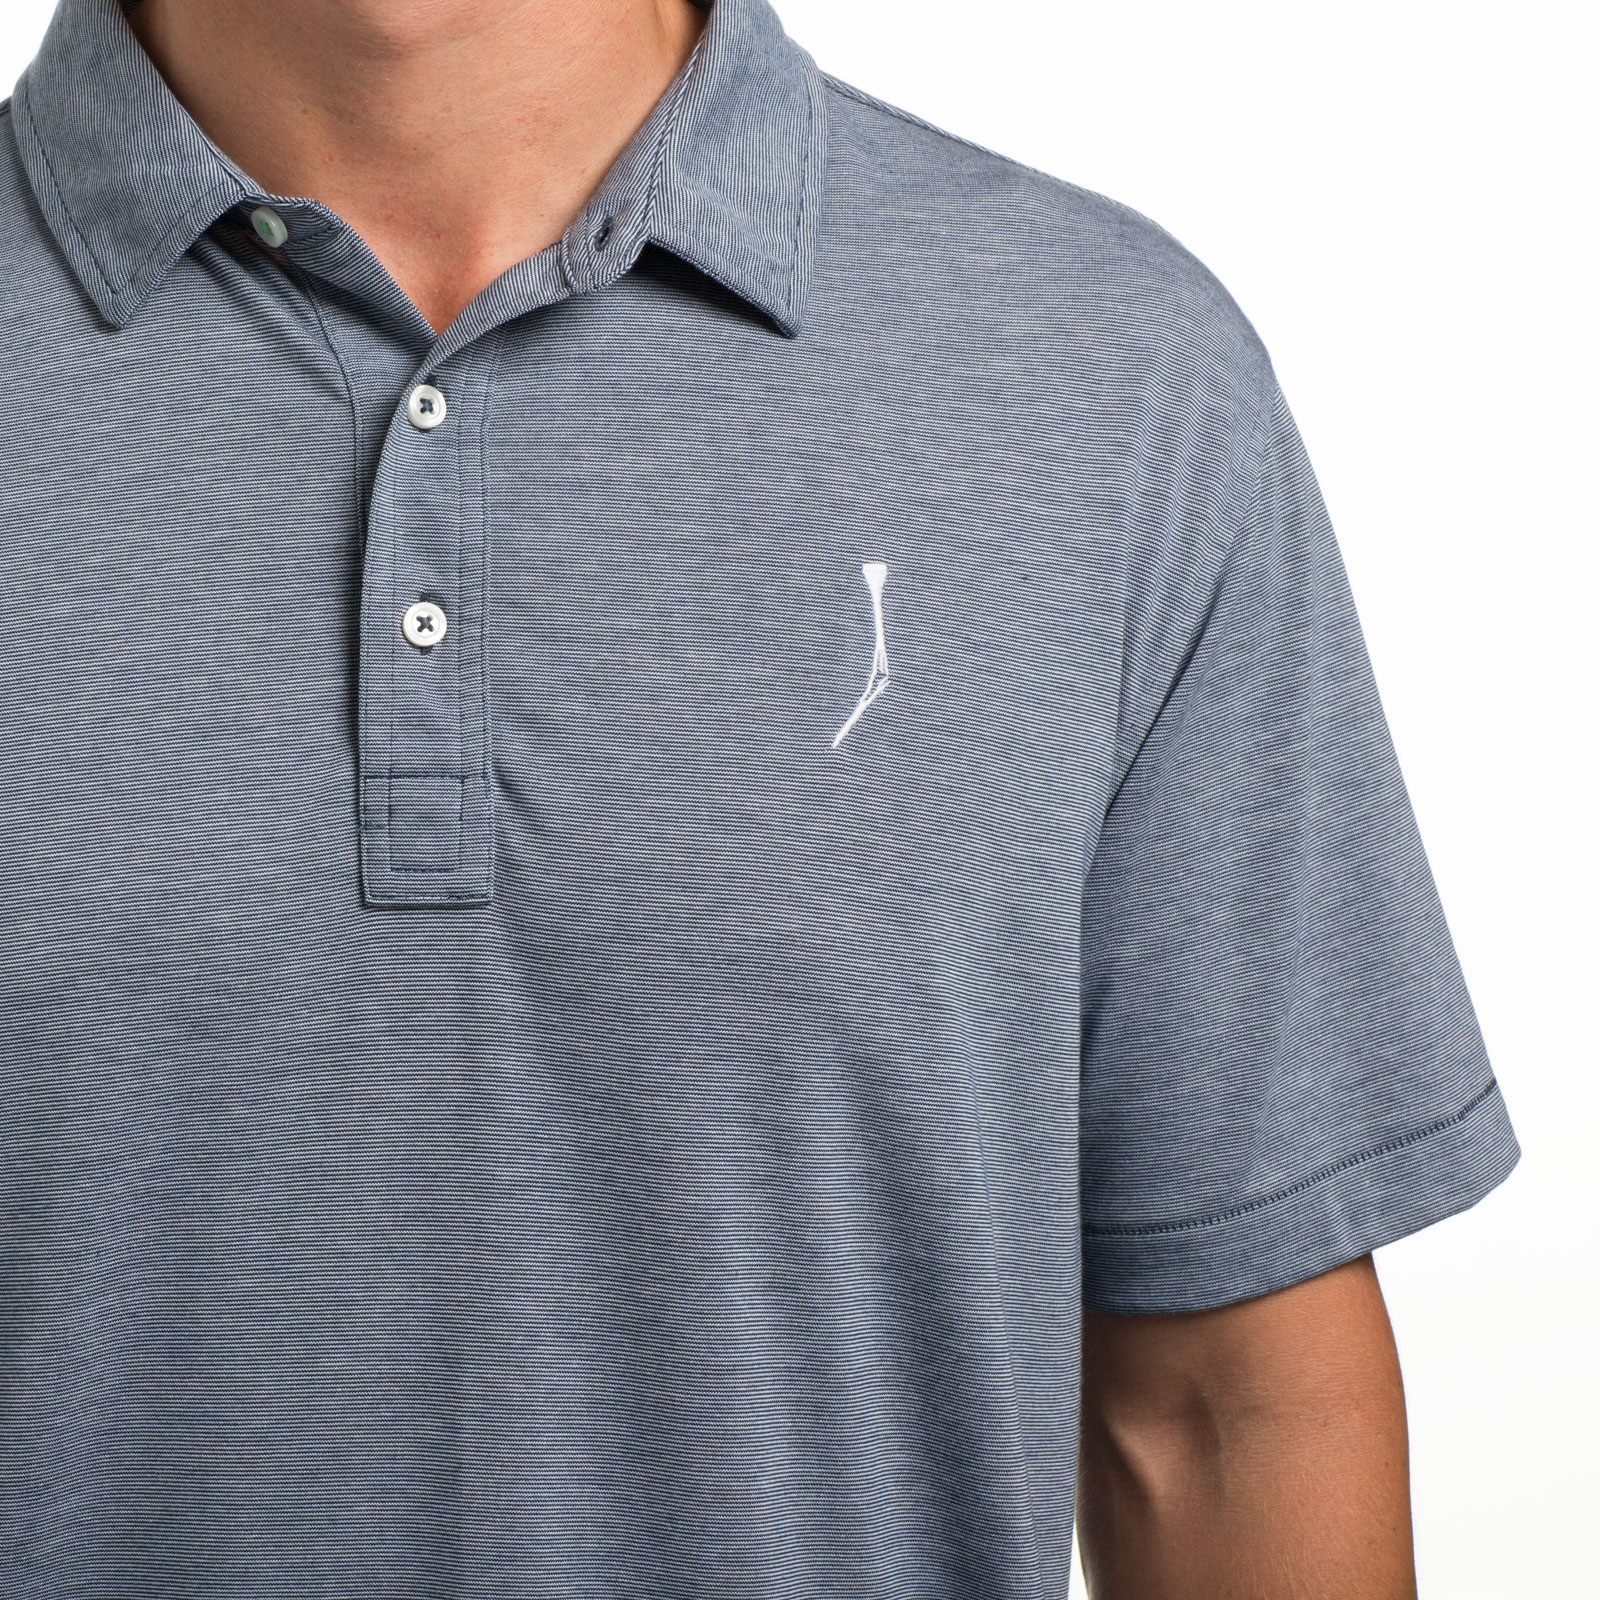 TGJ x Linksoul Men's Avila Polo - Vintage Navy